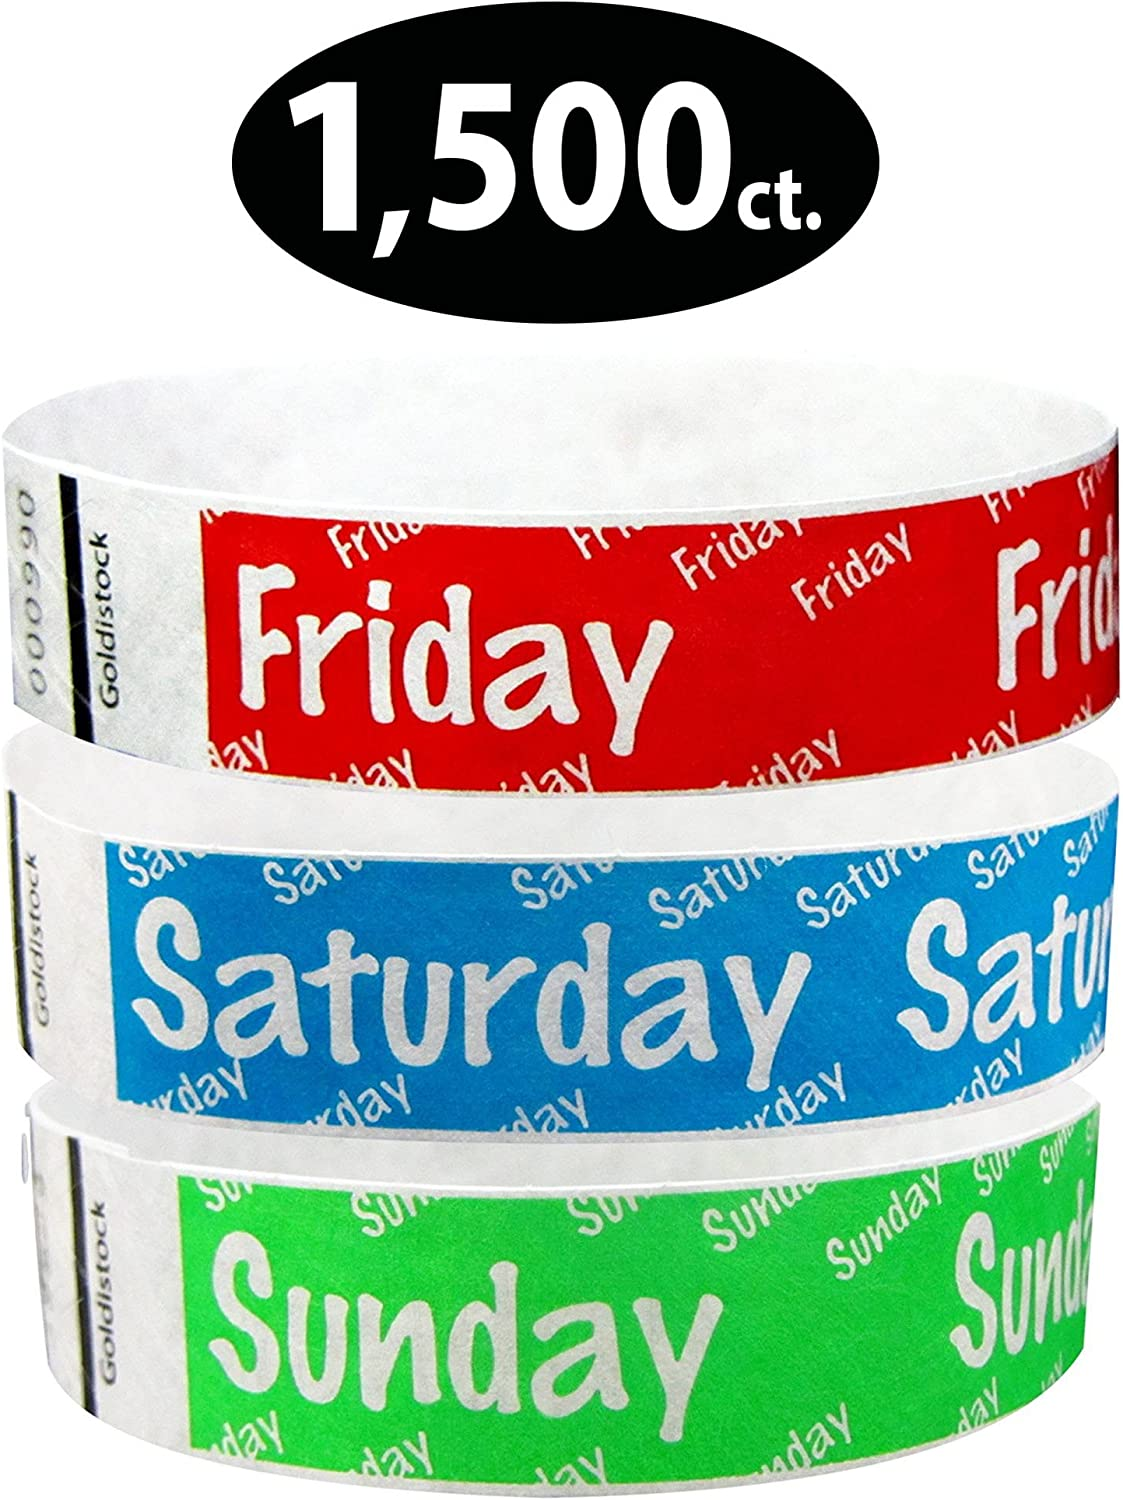 """Heavier Tyvek Wristbands 7.5 Mil – Goldistock Weekend Variety Pack 1,500 Count - ¾"""" Arm Bands- 500 Ea: Friday (Red), Saturday (Blue), Sunday (Green) - Paper-like Party Armbands- Wrist Bands for Events"""